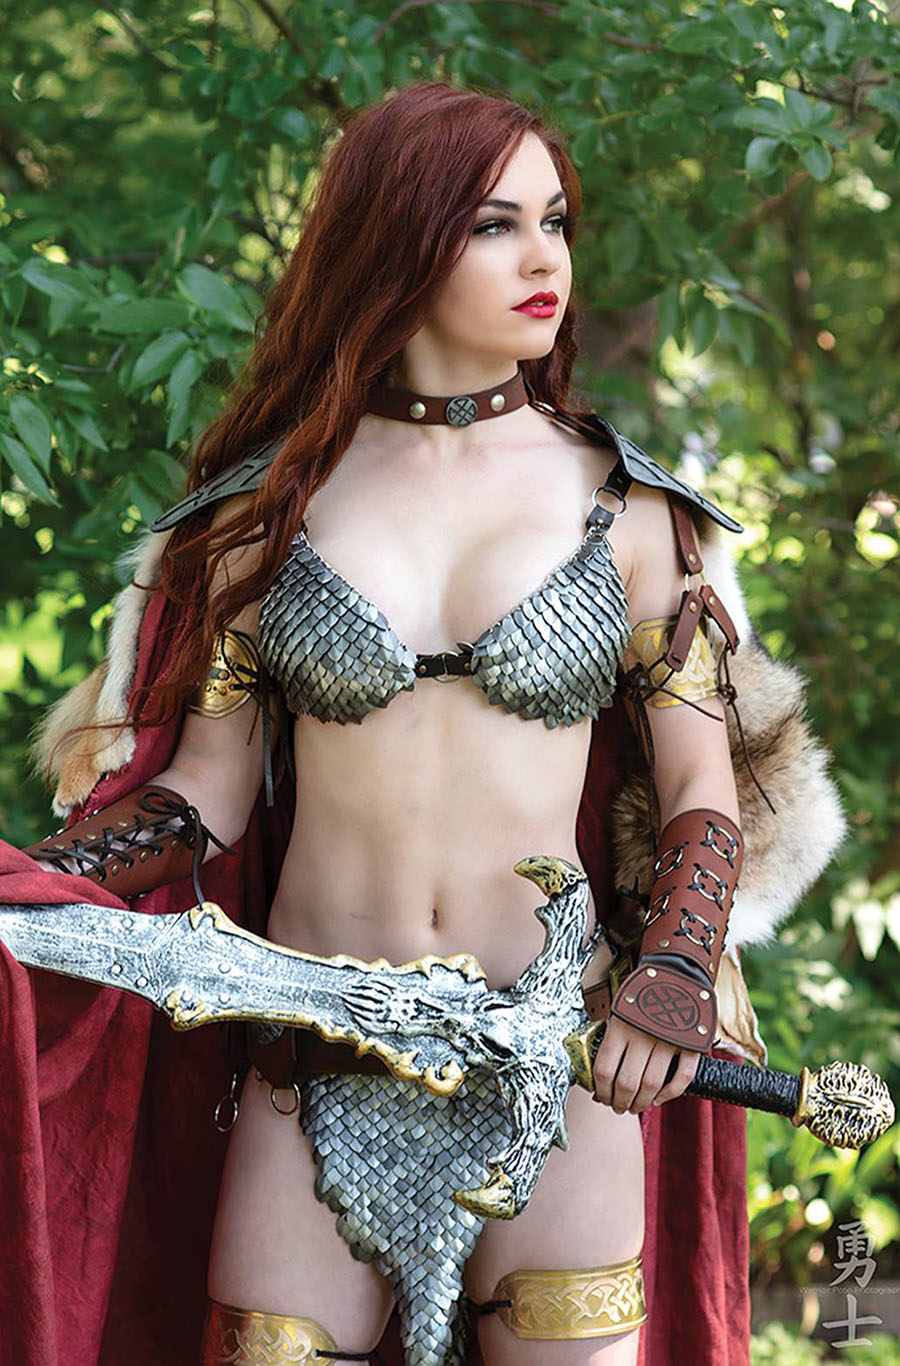 Red Sonja Valentines Special One Shot Cover G Incentive Savannah Polson Cosplay Photo Virgin Cover